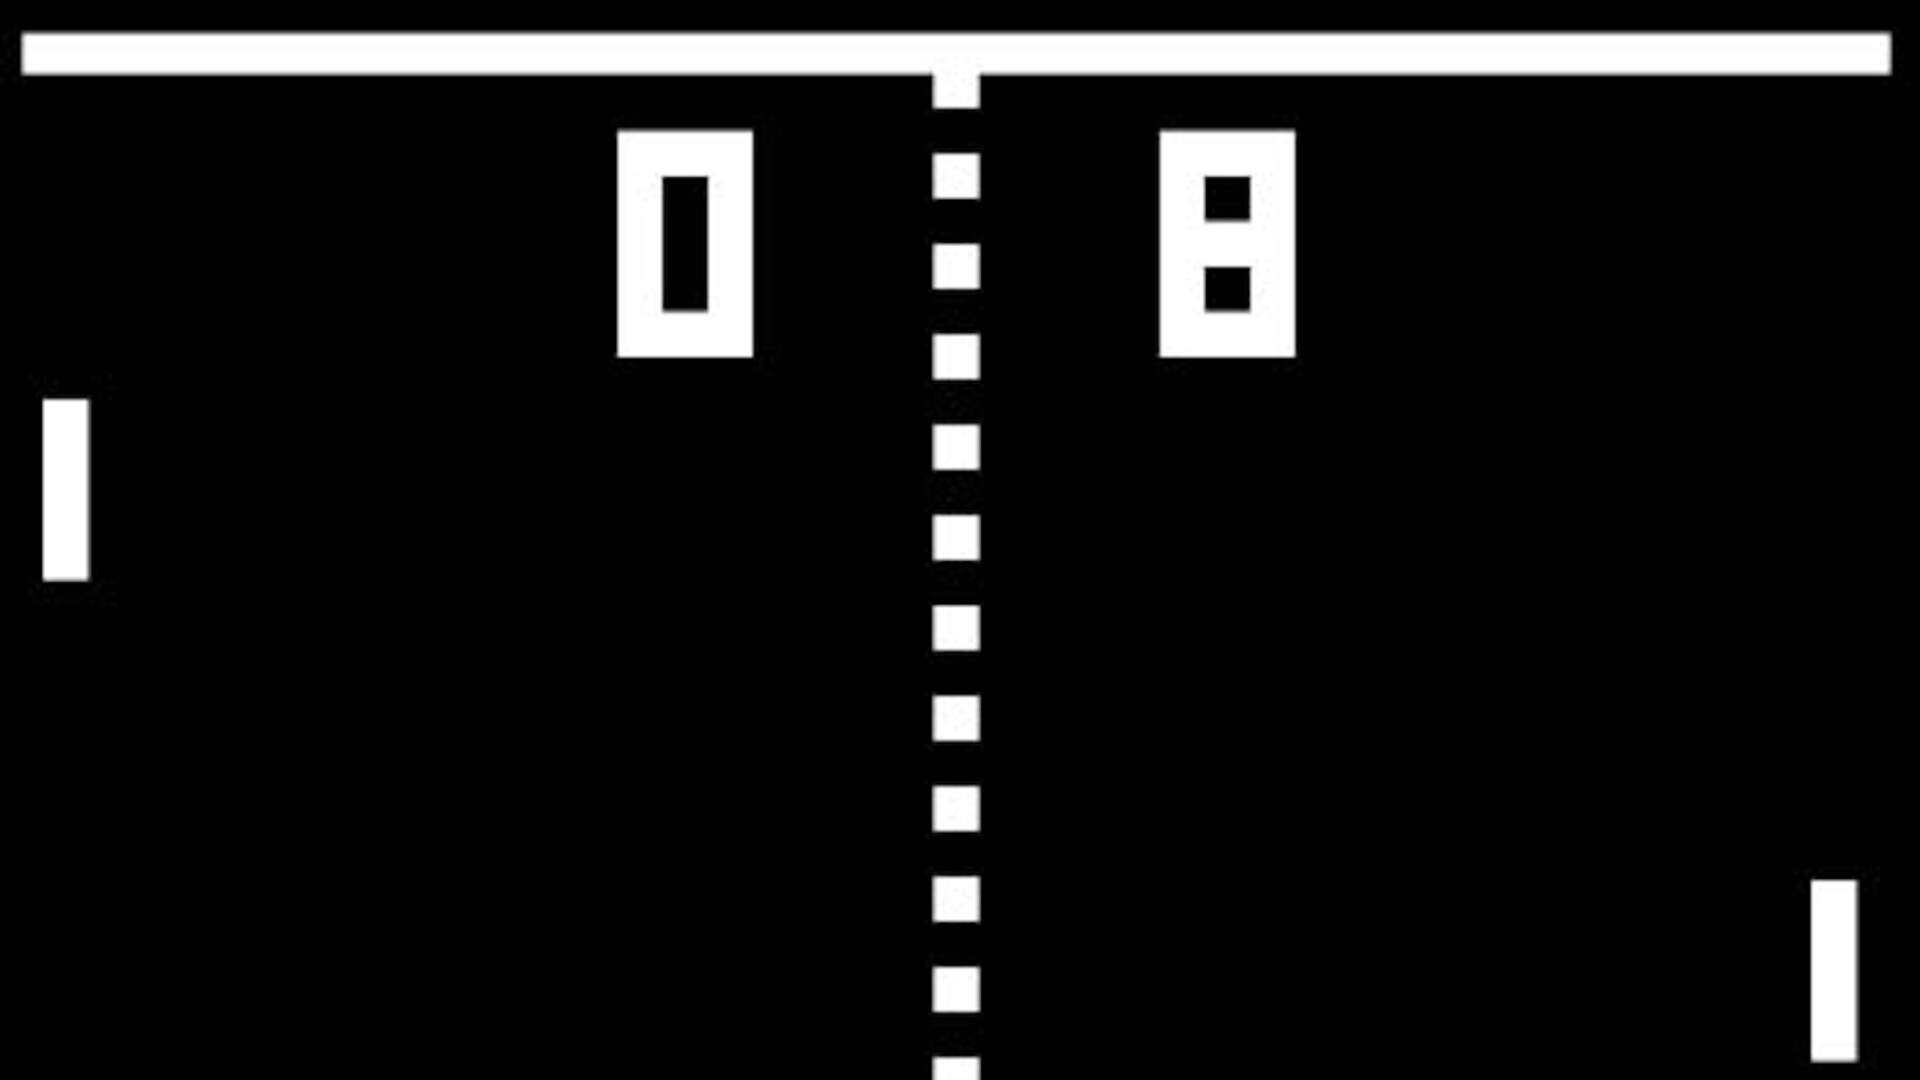 Pong.com is Pinterest for Flash Games